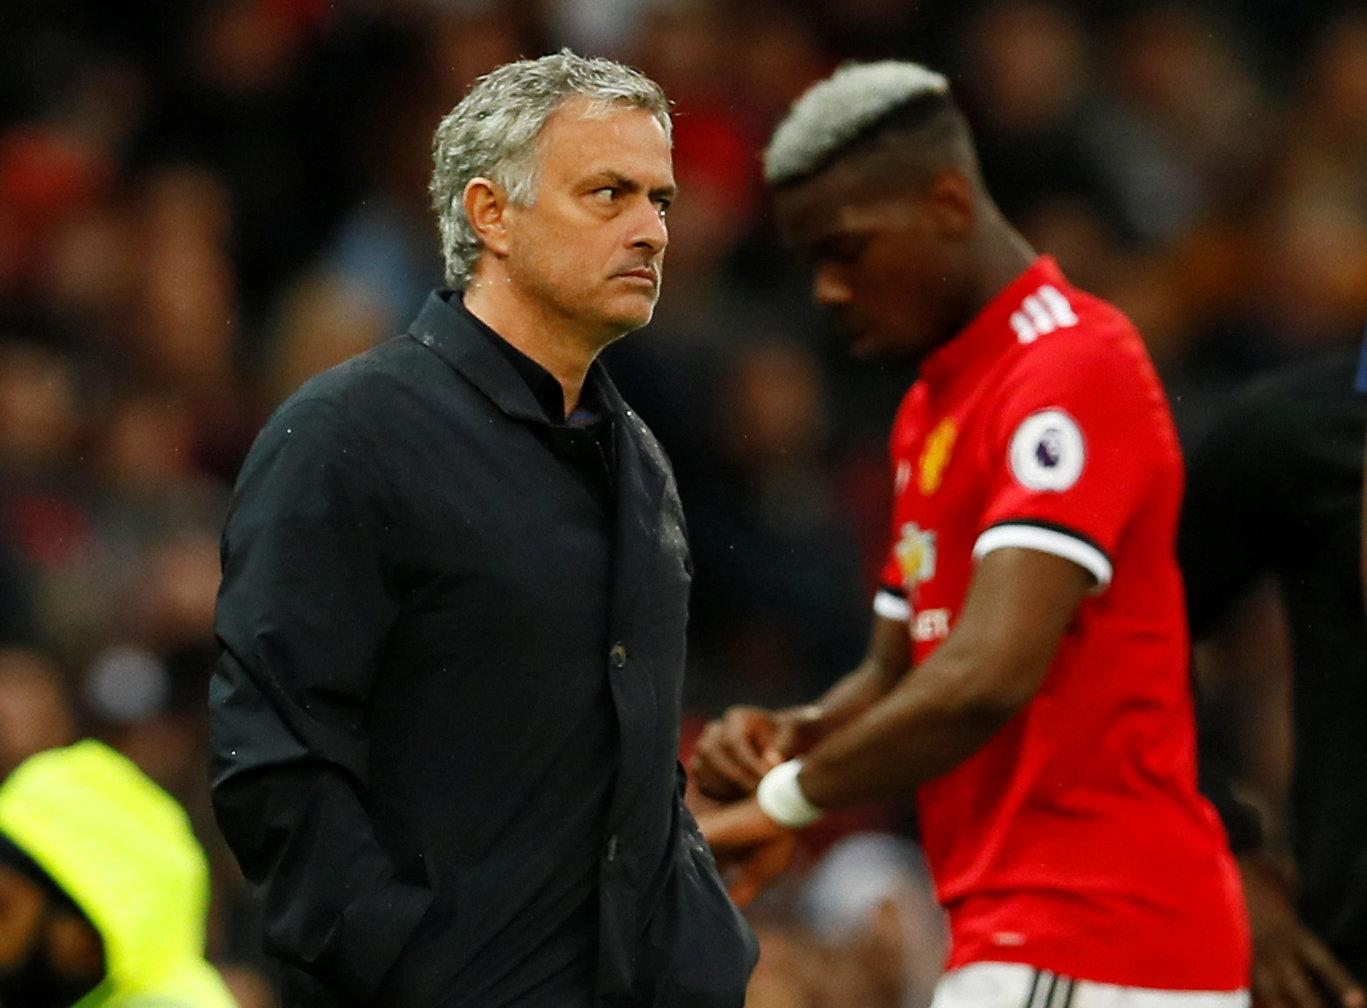 Paul Pogba has also had the Jose treatment this season